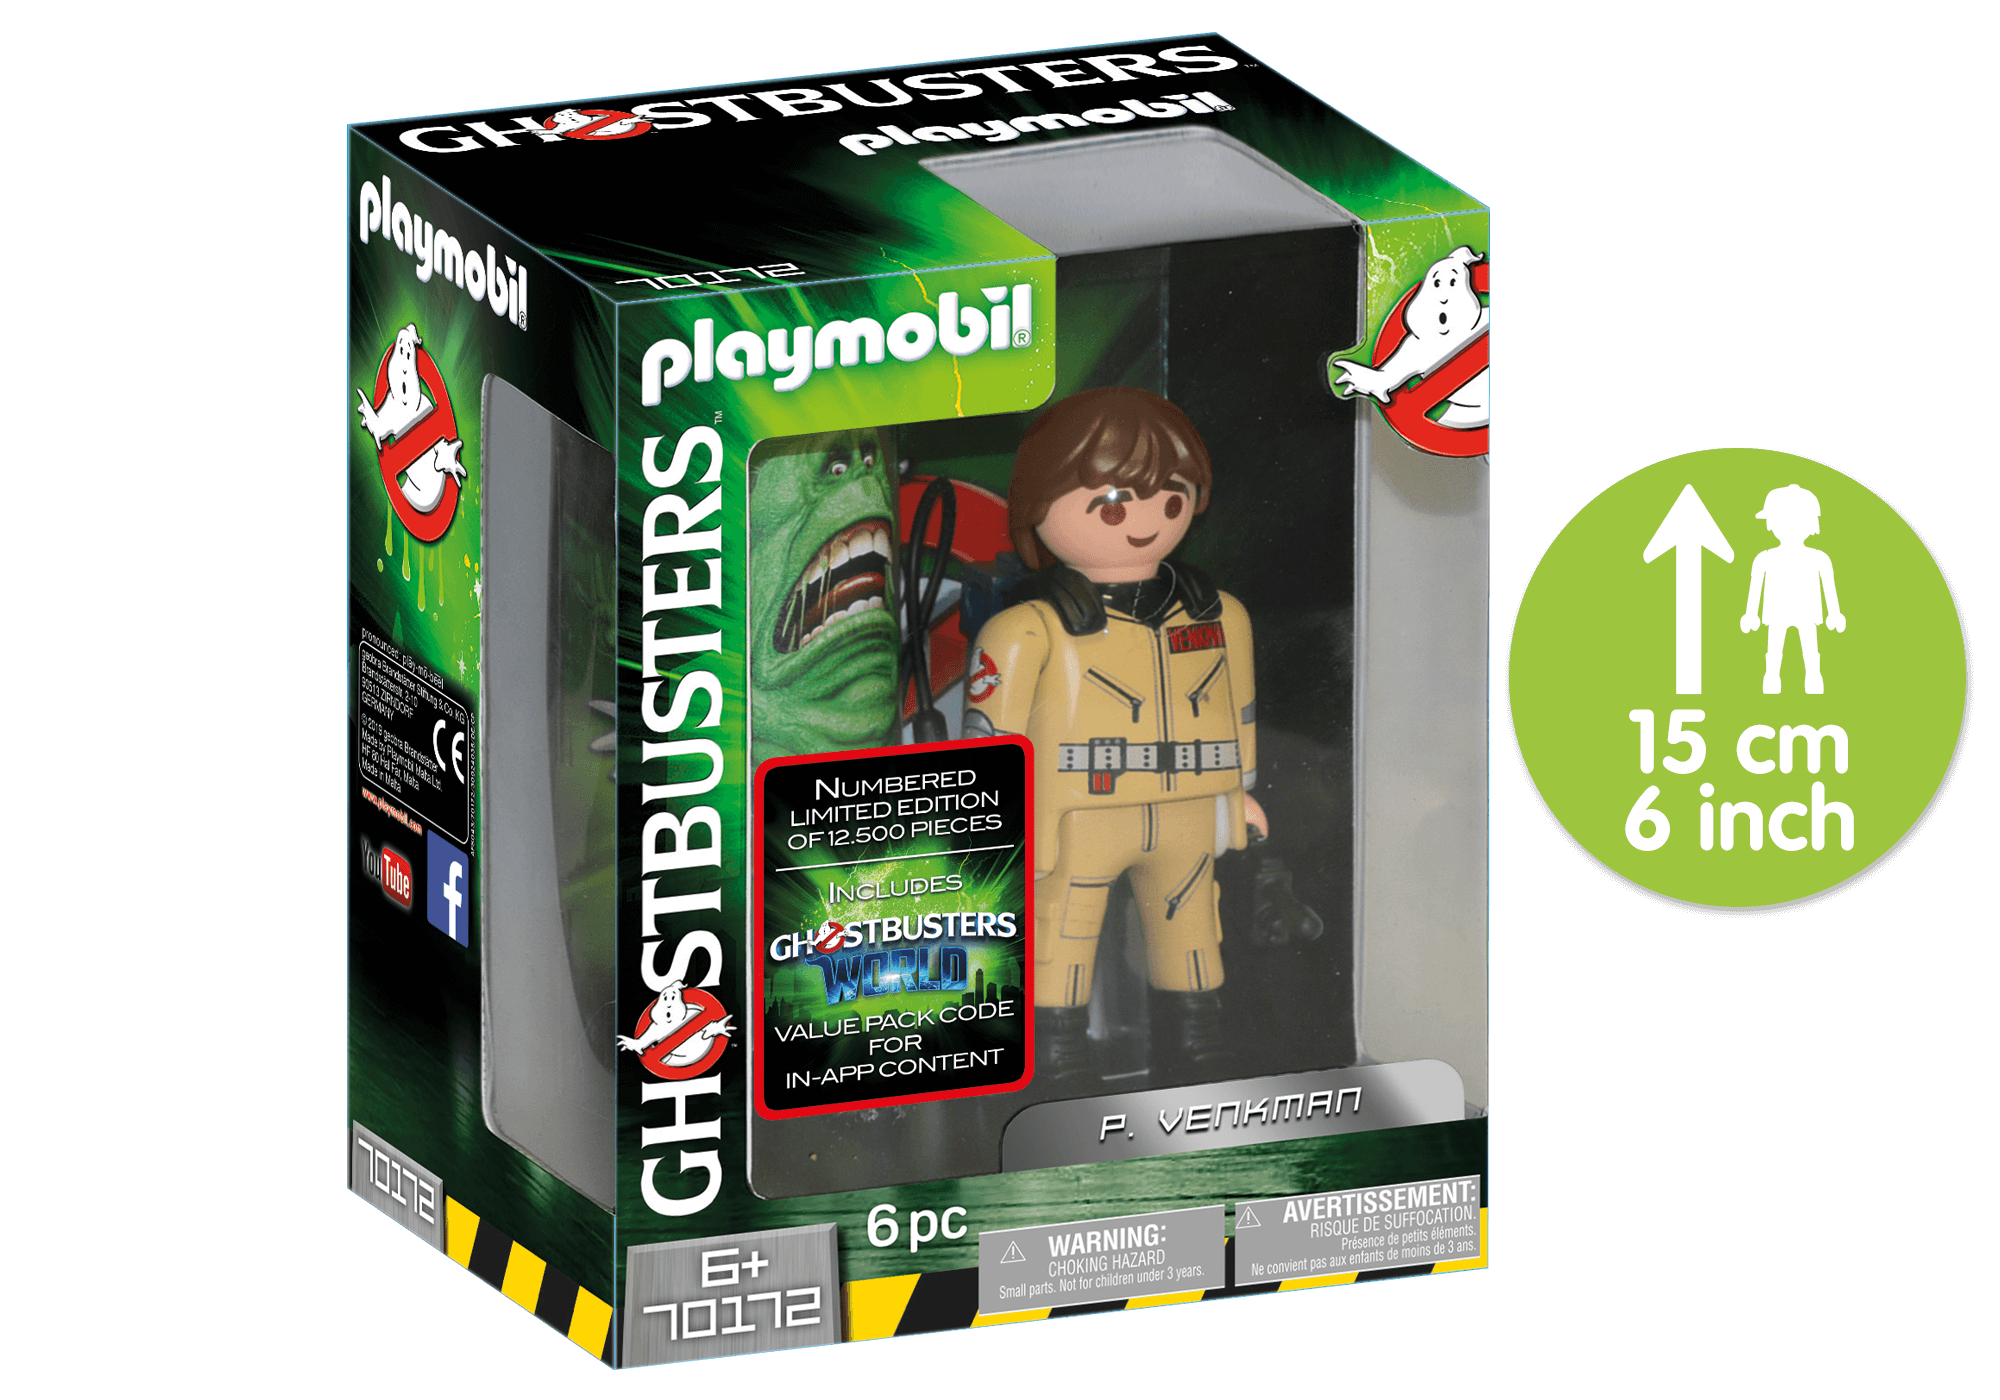 http://media.playmobil.com/i/playmobil/70172_product_detail/Ghostbusters™  Edition Collector  P. Venkman